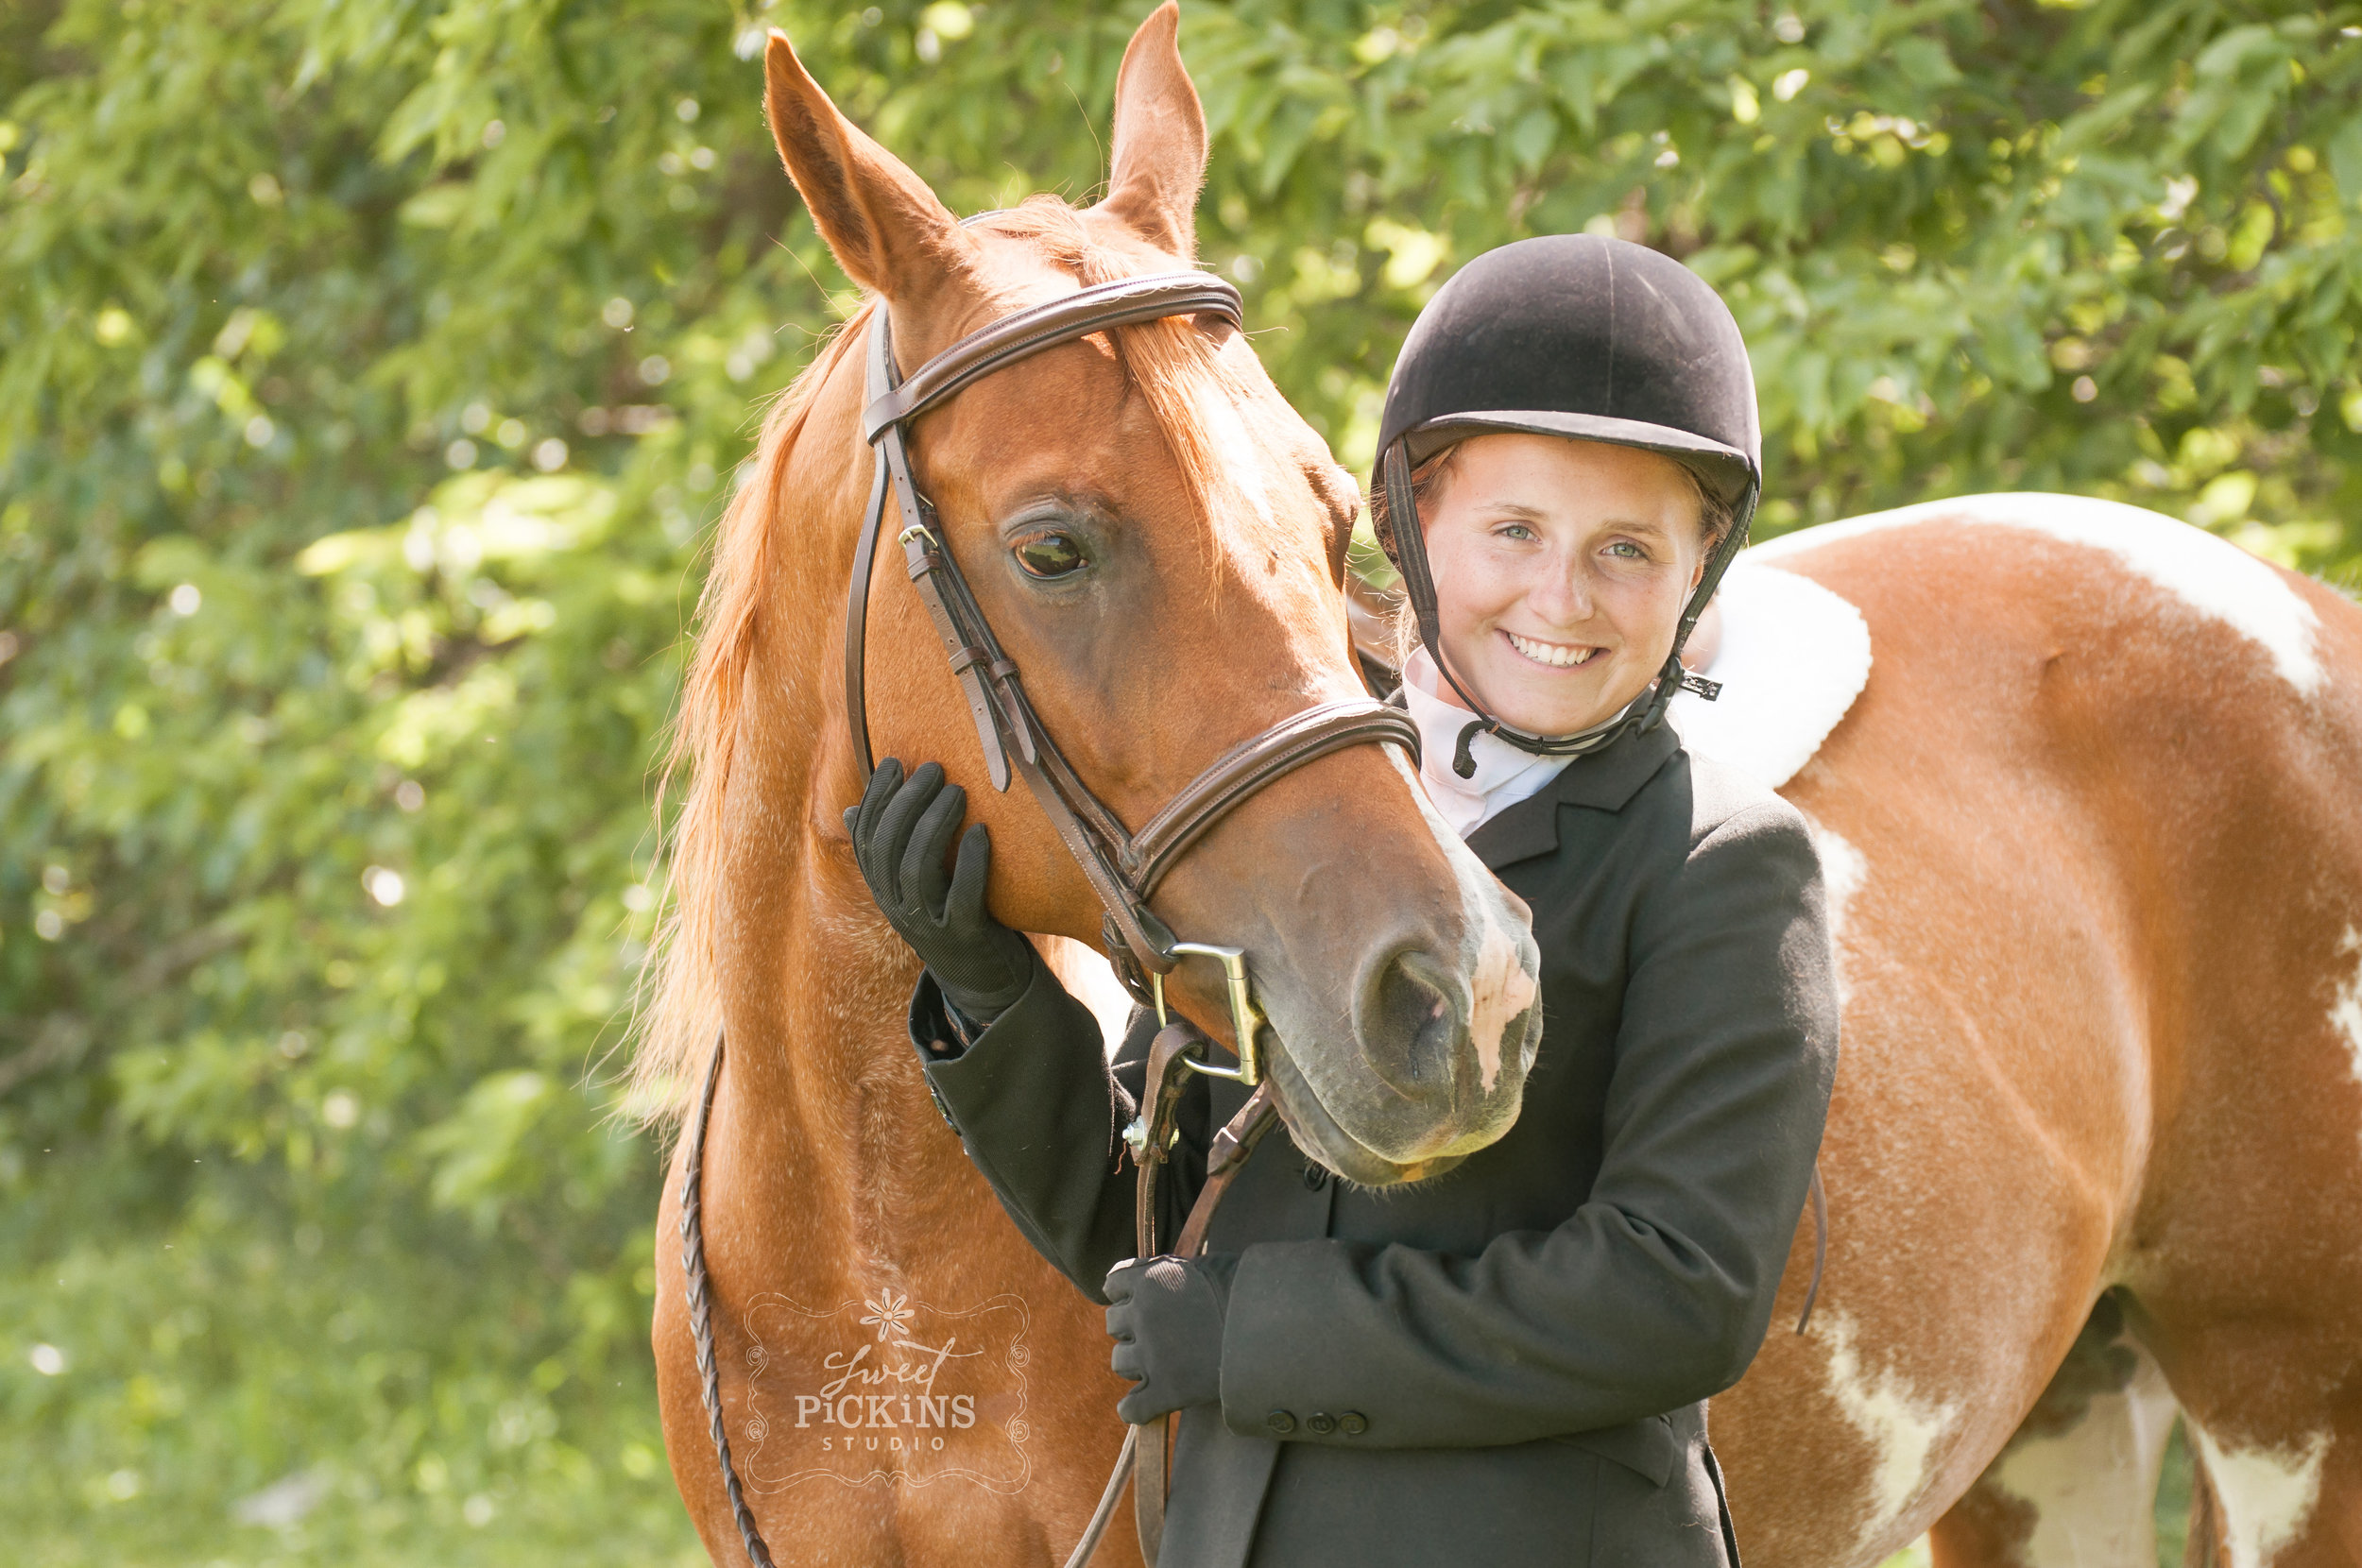 Equestrian Horse Portrait Photography Session   Greentown, IN